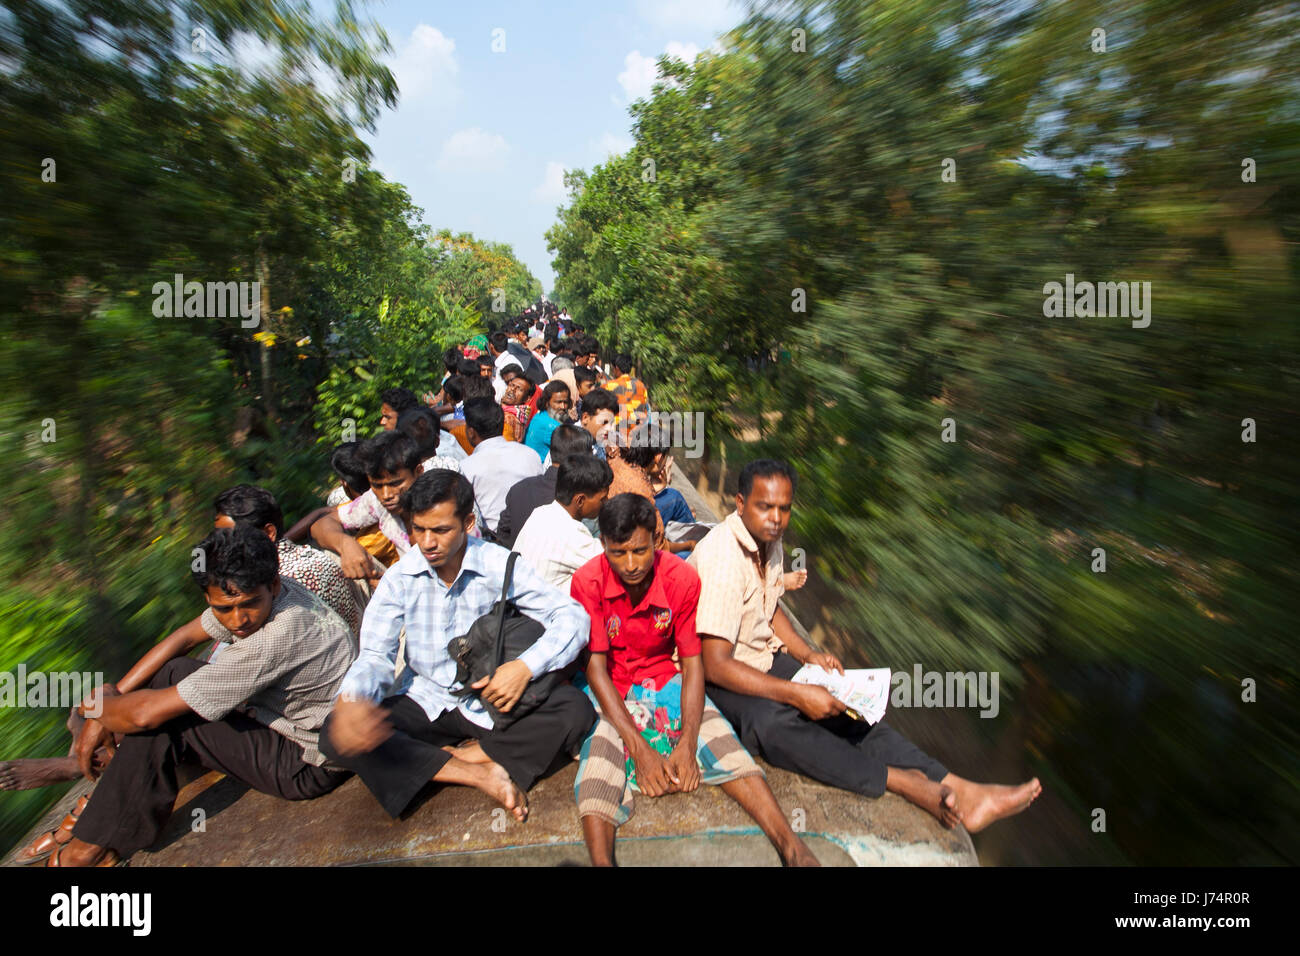 Thousands of Eid vacationers ride on top of train to reach their villages. Gazipur, Bangladesh - Stock Image